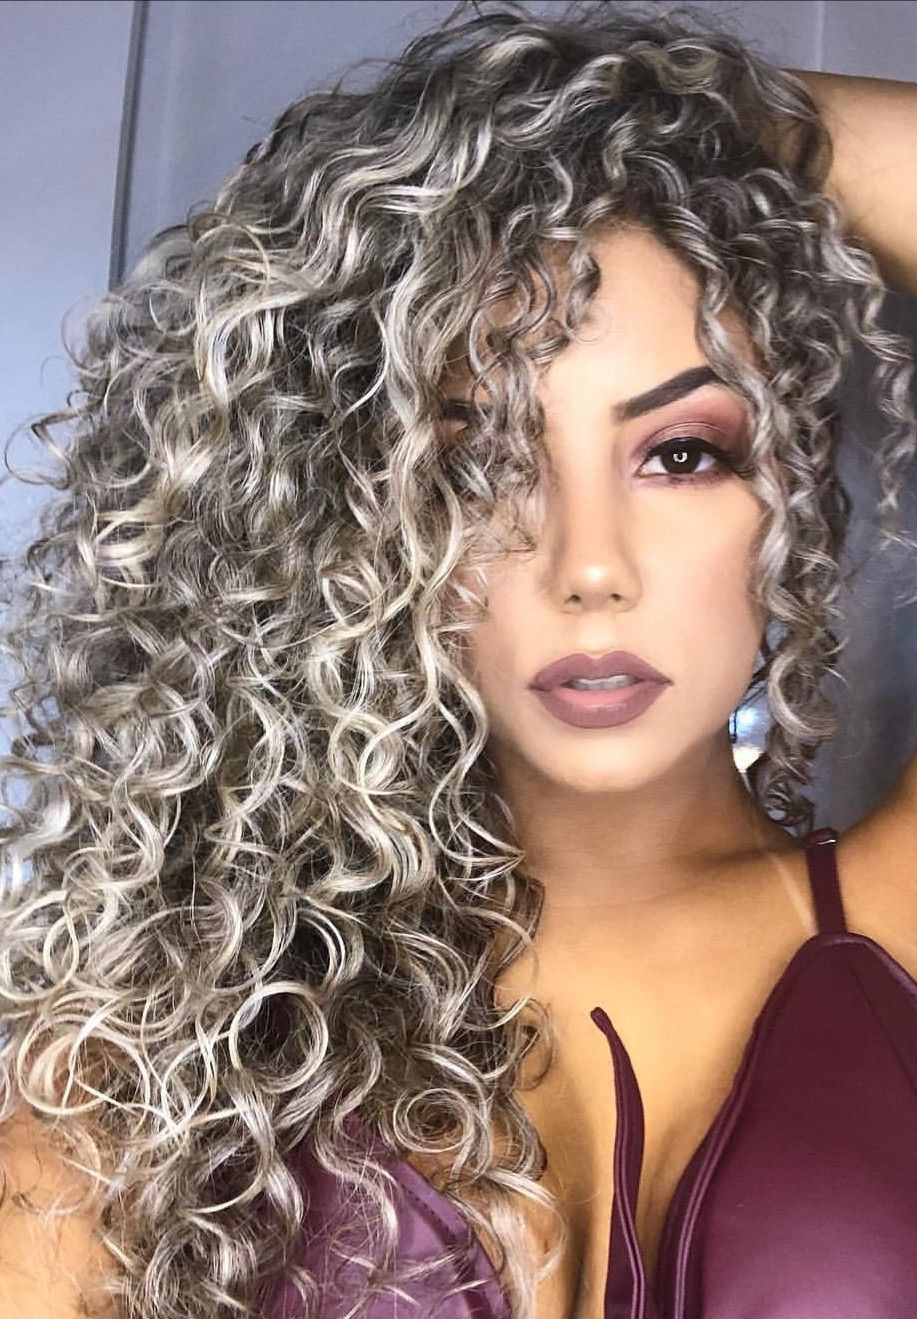 Long Spirals Grey Curly Hair Styles Frosted Hair Colored Curly